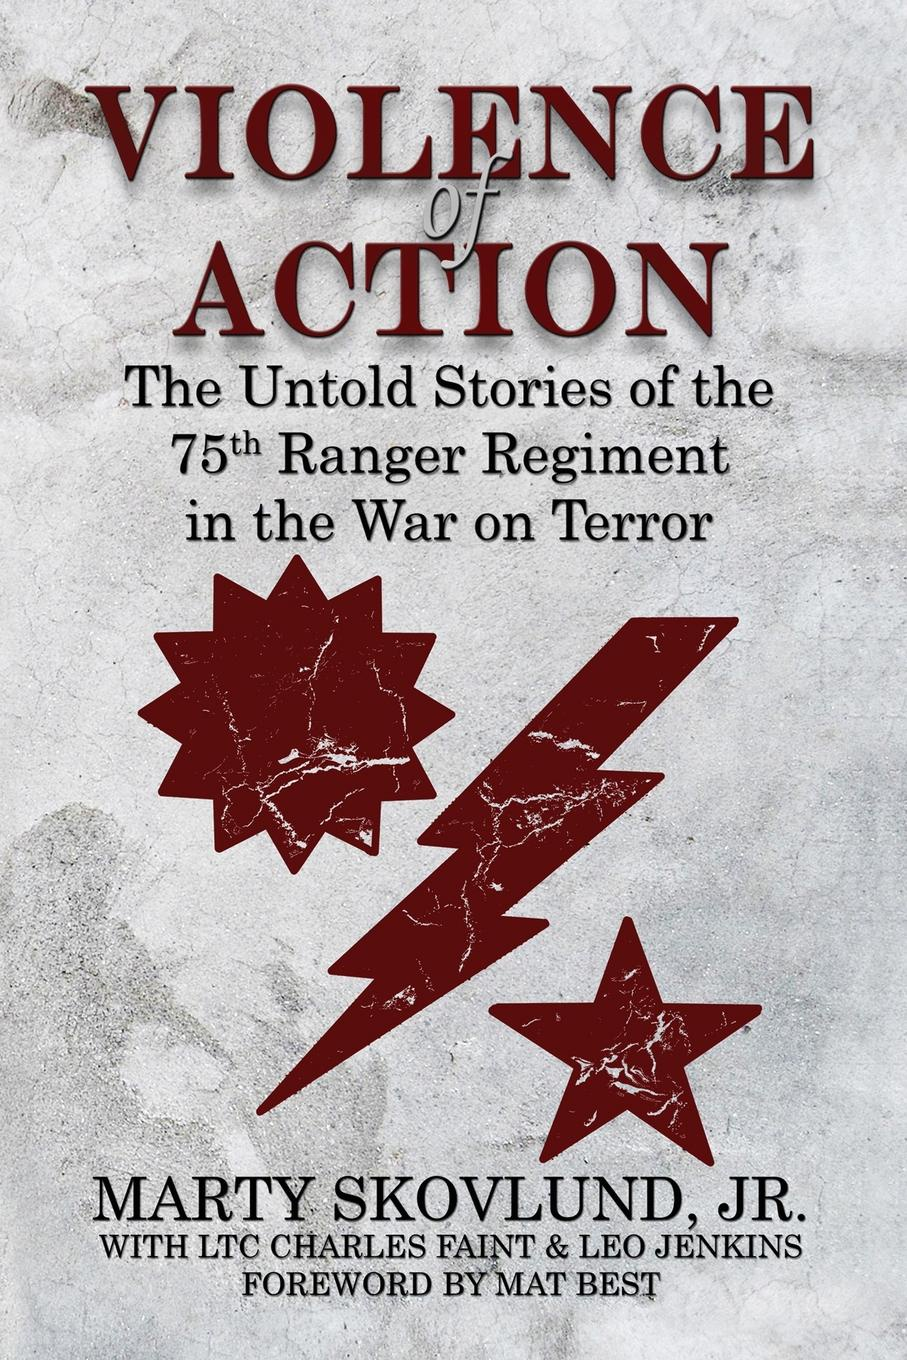 Marty Skovlund, Charles Faint, Leo Jenkins Violence of Action. The Untold Stories of the 75th Ranger Regiment in the War on Terror nicola cornick house of shadows discover the thrilling untold story of the winter queen